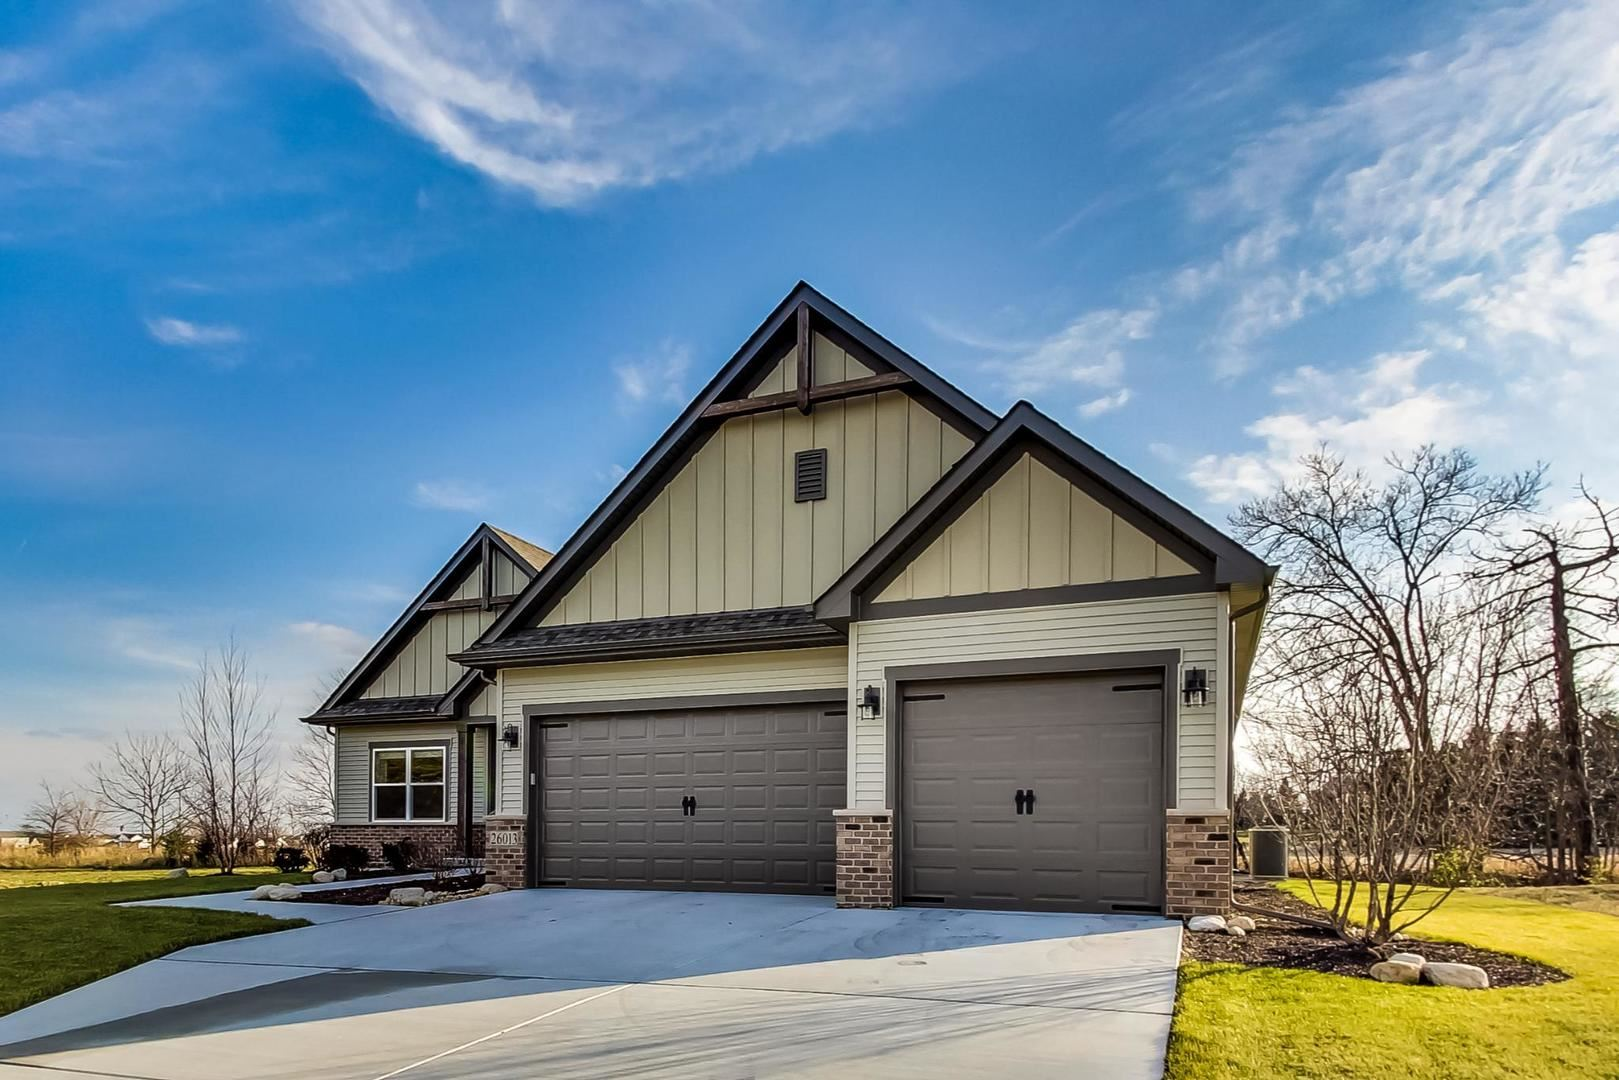 Photo of 26013 W Forrester Drive, Plainfield, IL 60585 (MLS # 10986590)